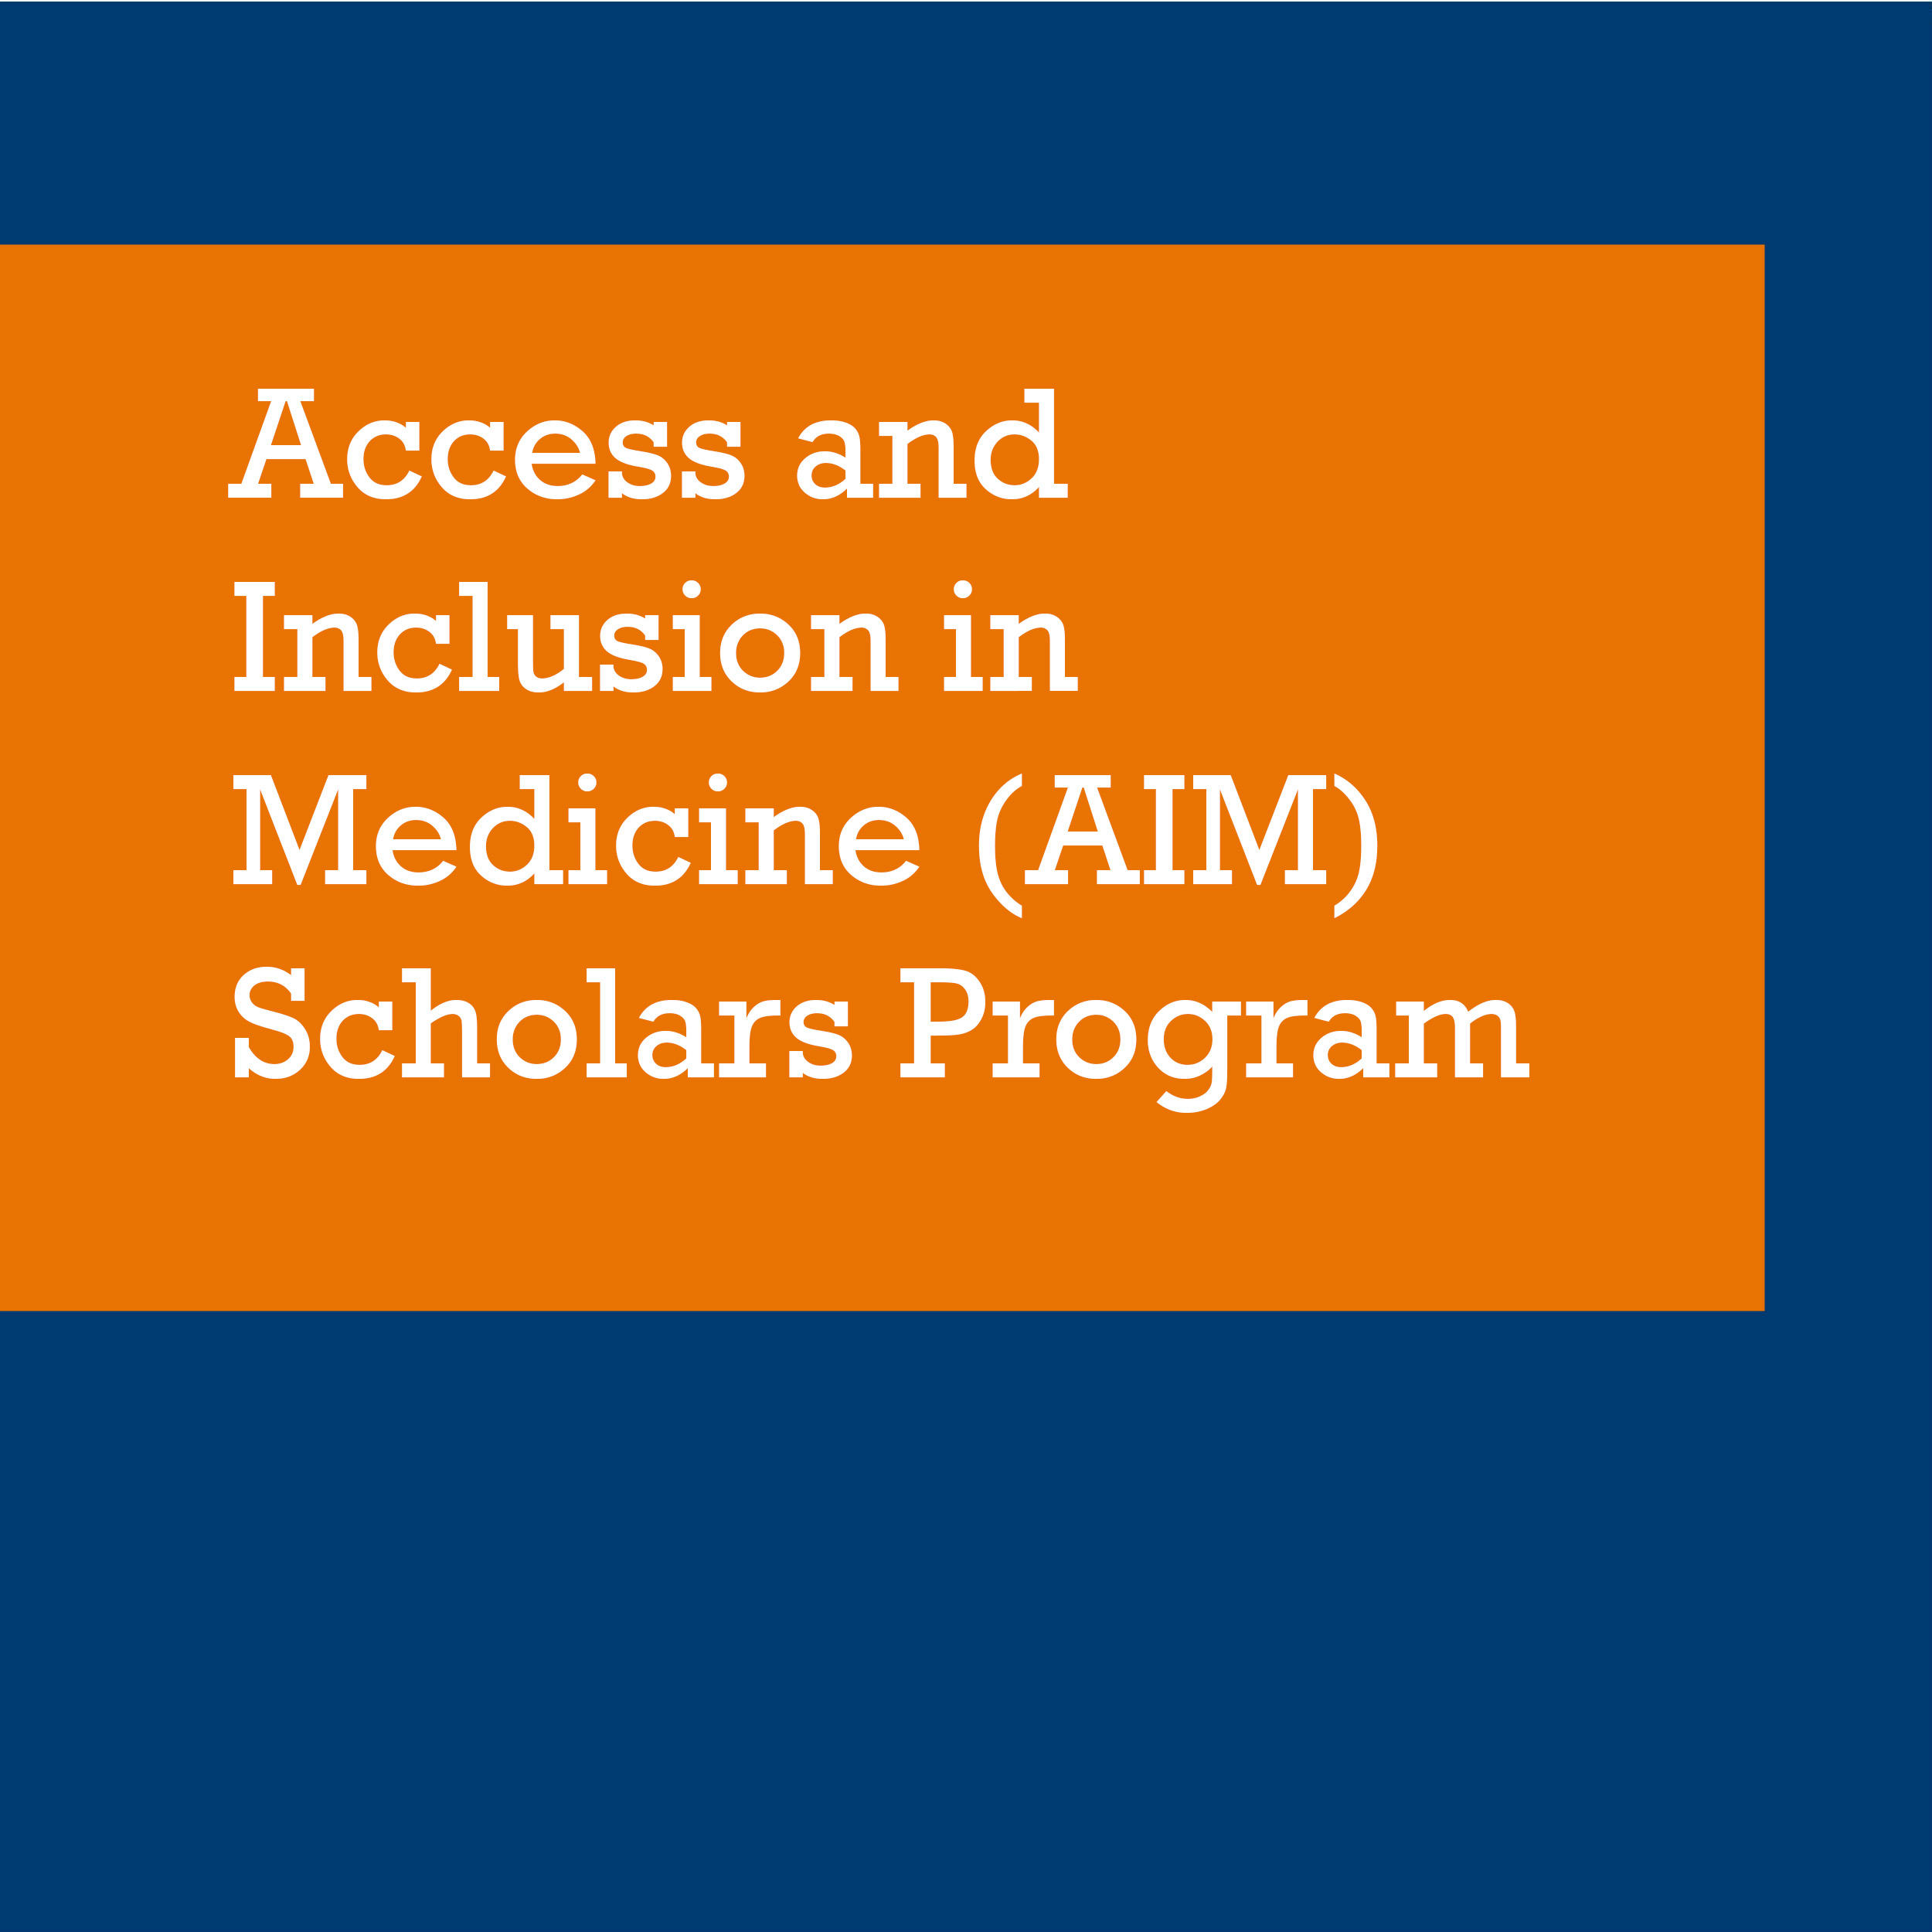 Access and Inclusion in Medicine (AIM) Scholars Program thumbnail